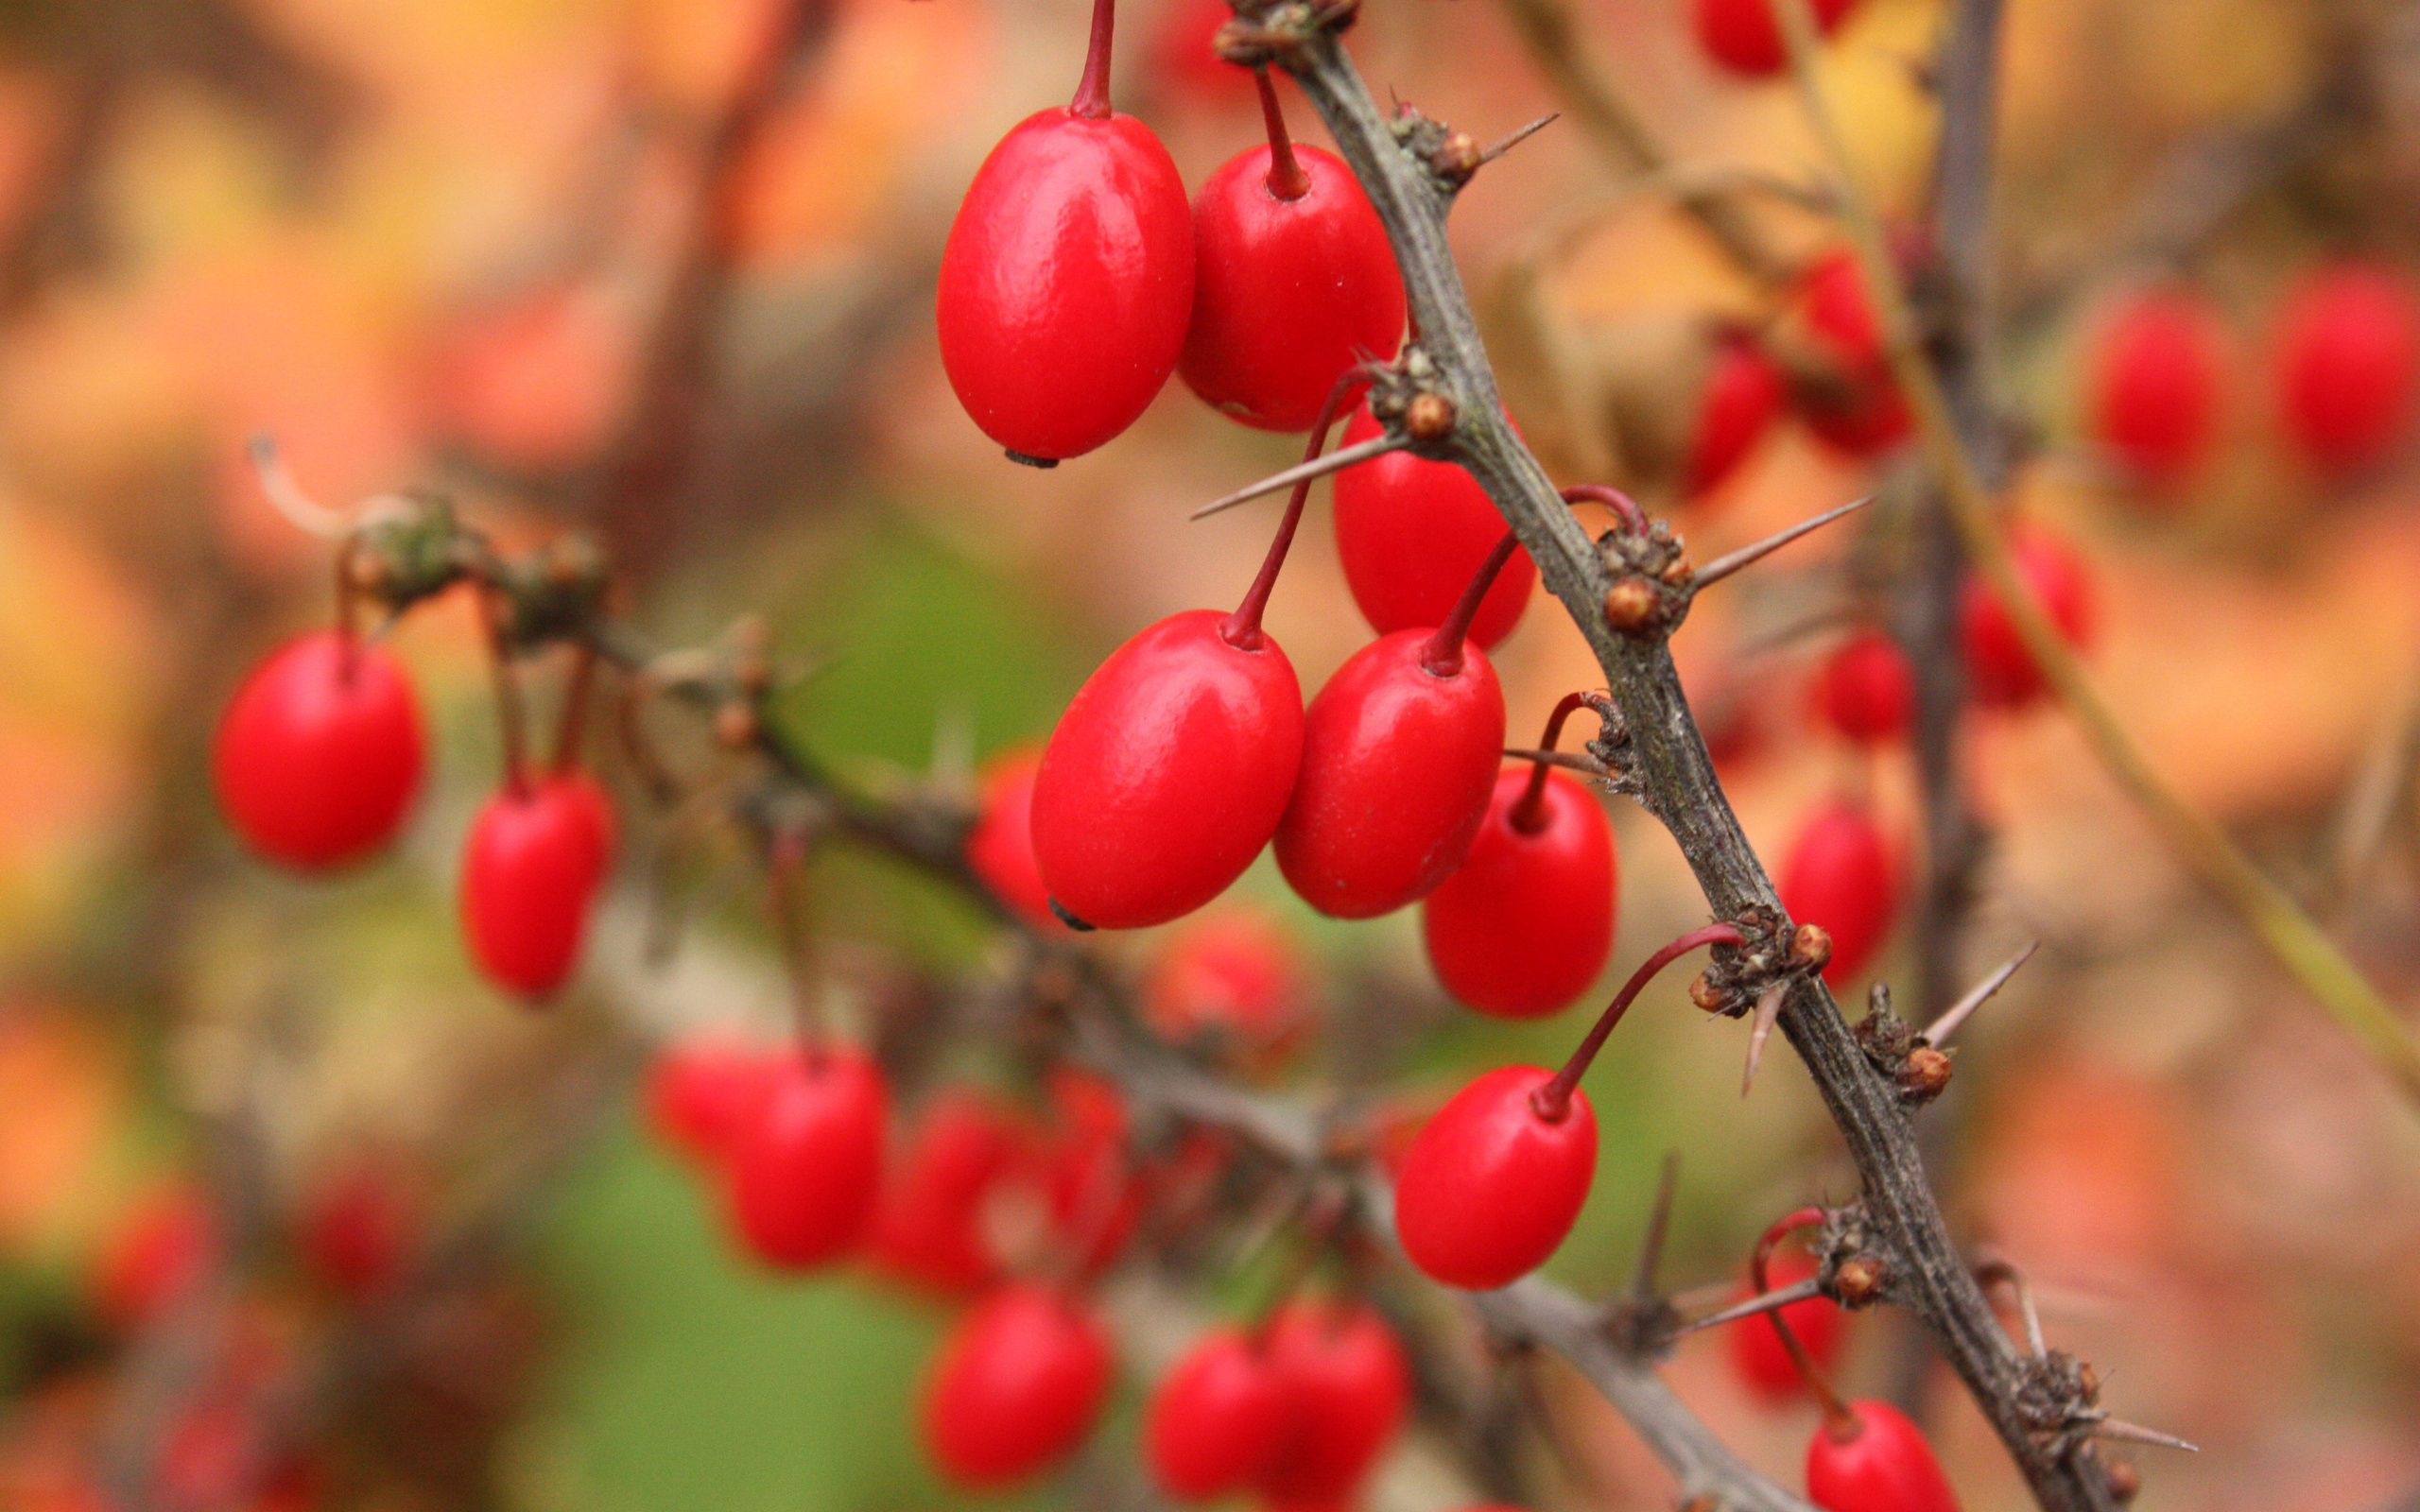 52899 download wallpaper Macro, Barberry, Branch, Wood, Tree, Berries screensavers and pictures for free